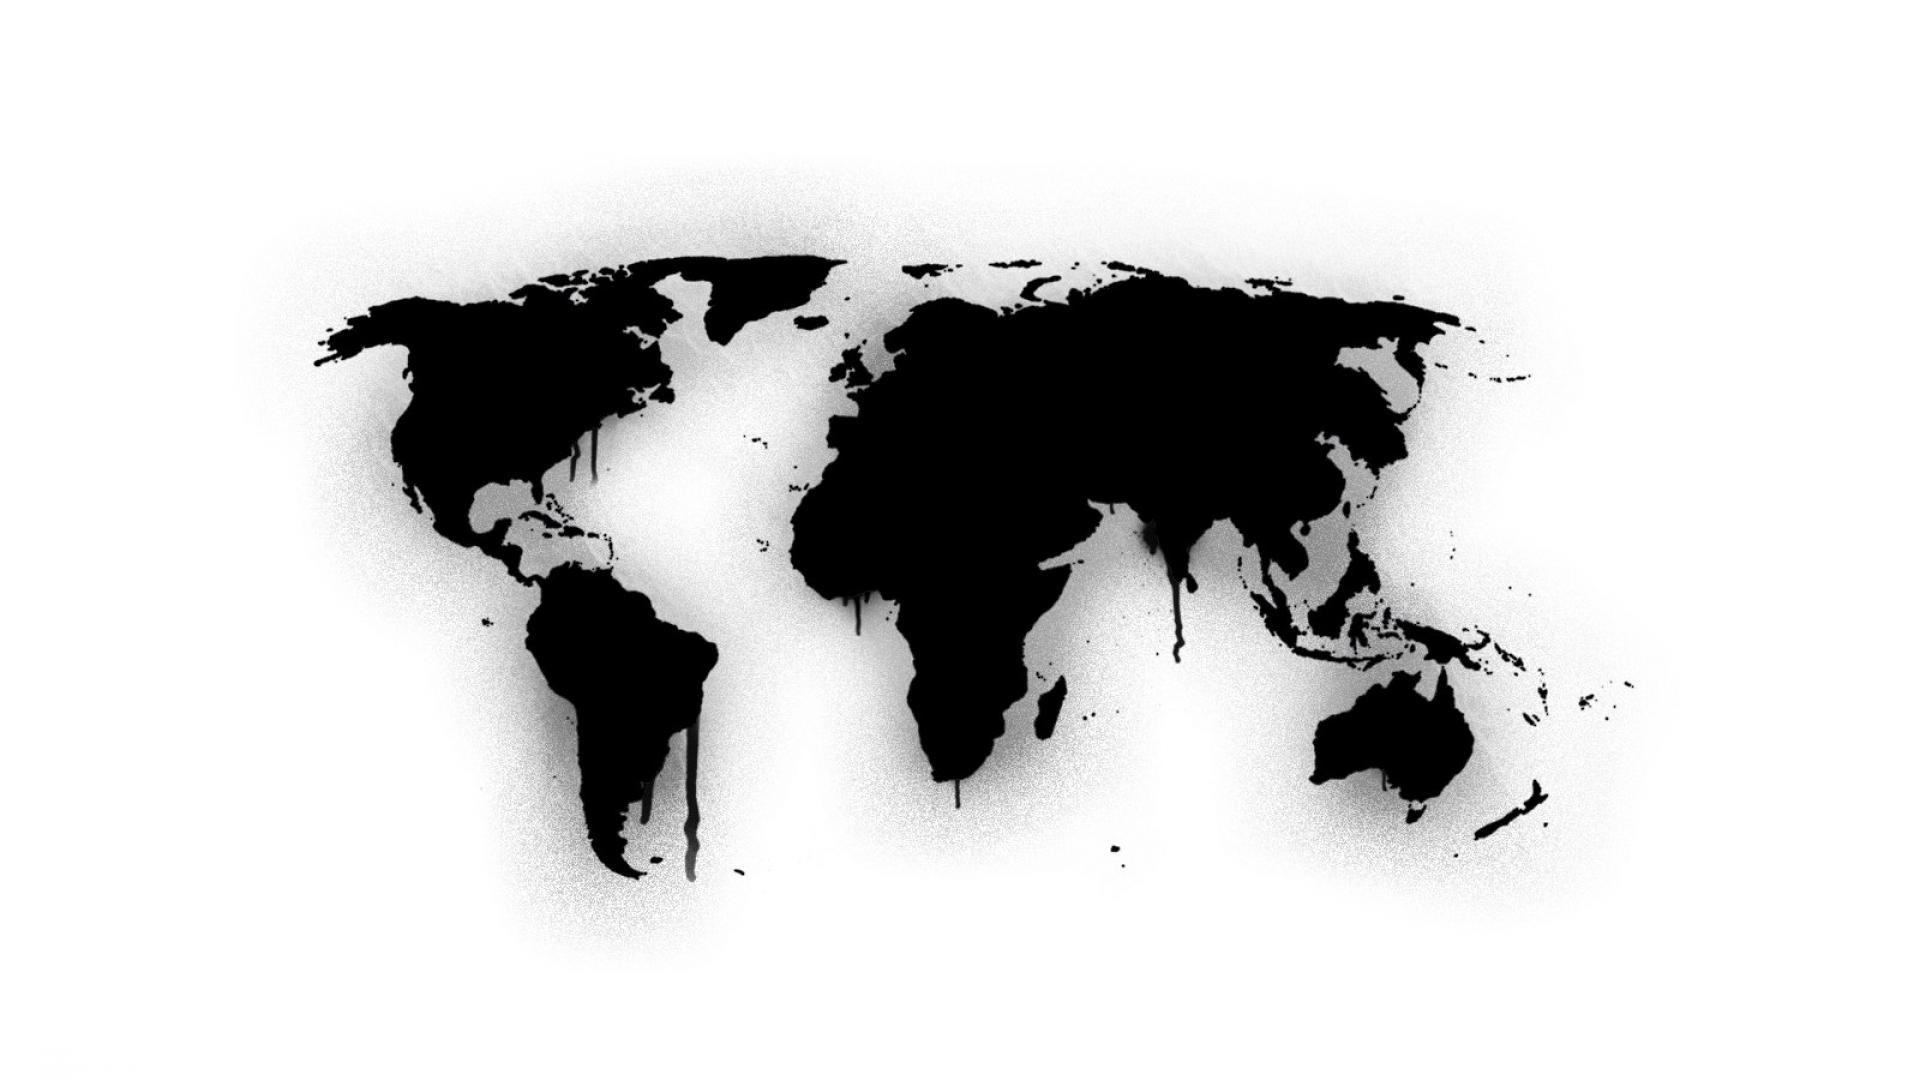 Download Free 3d Wallpapers For Windows 8 Download World Map Wallpaper Black And White Gallery